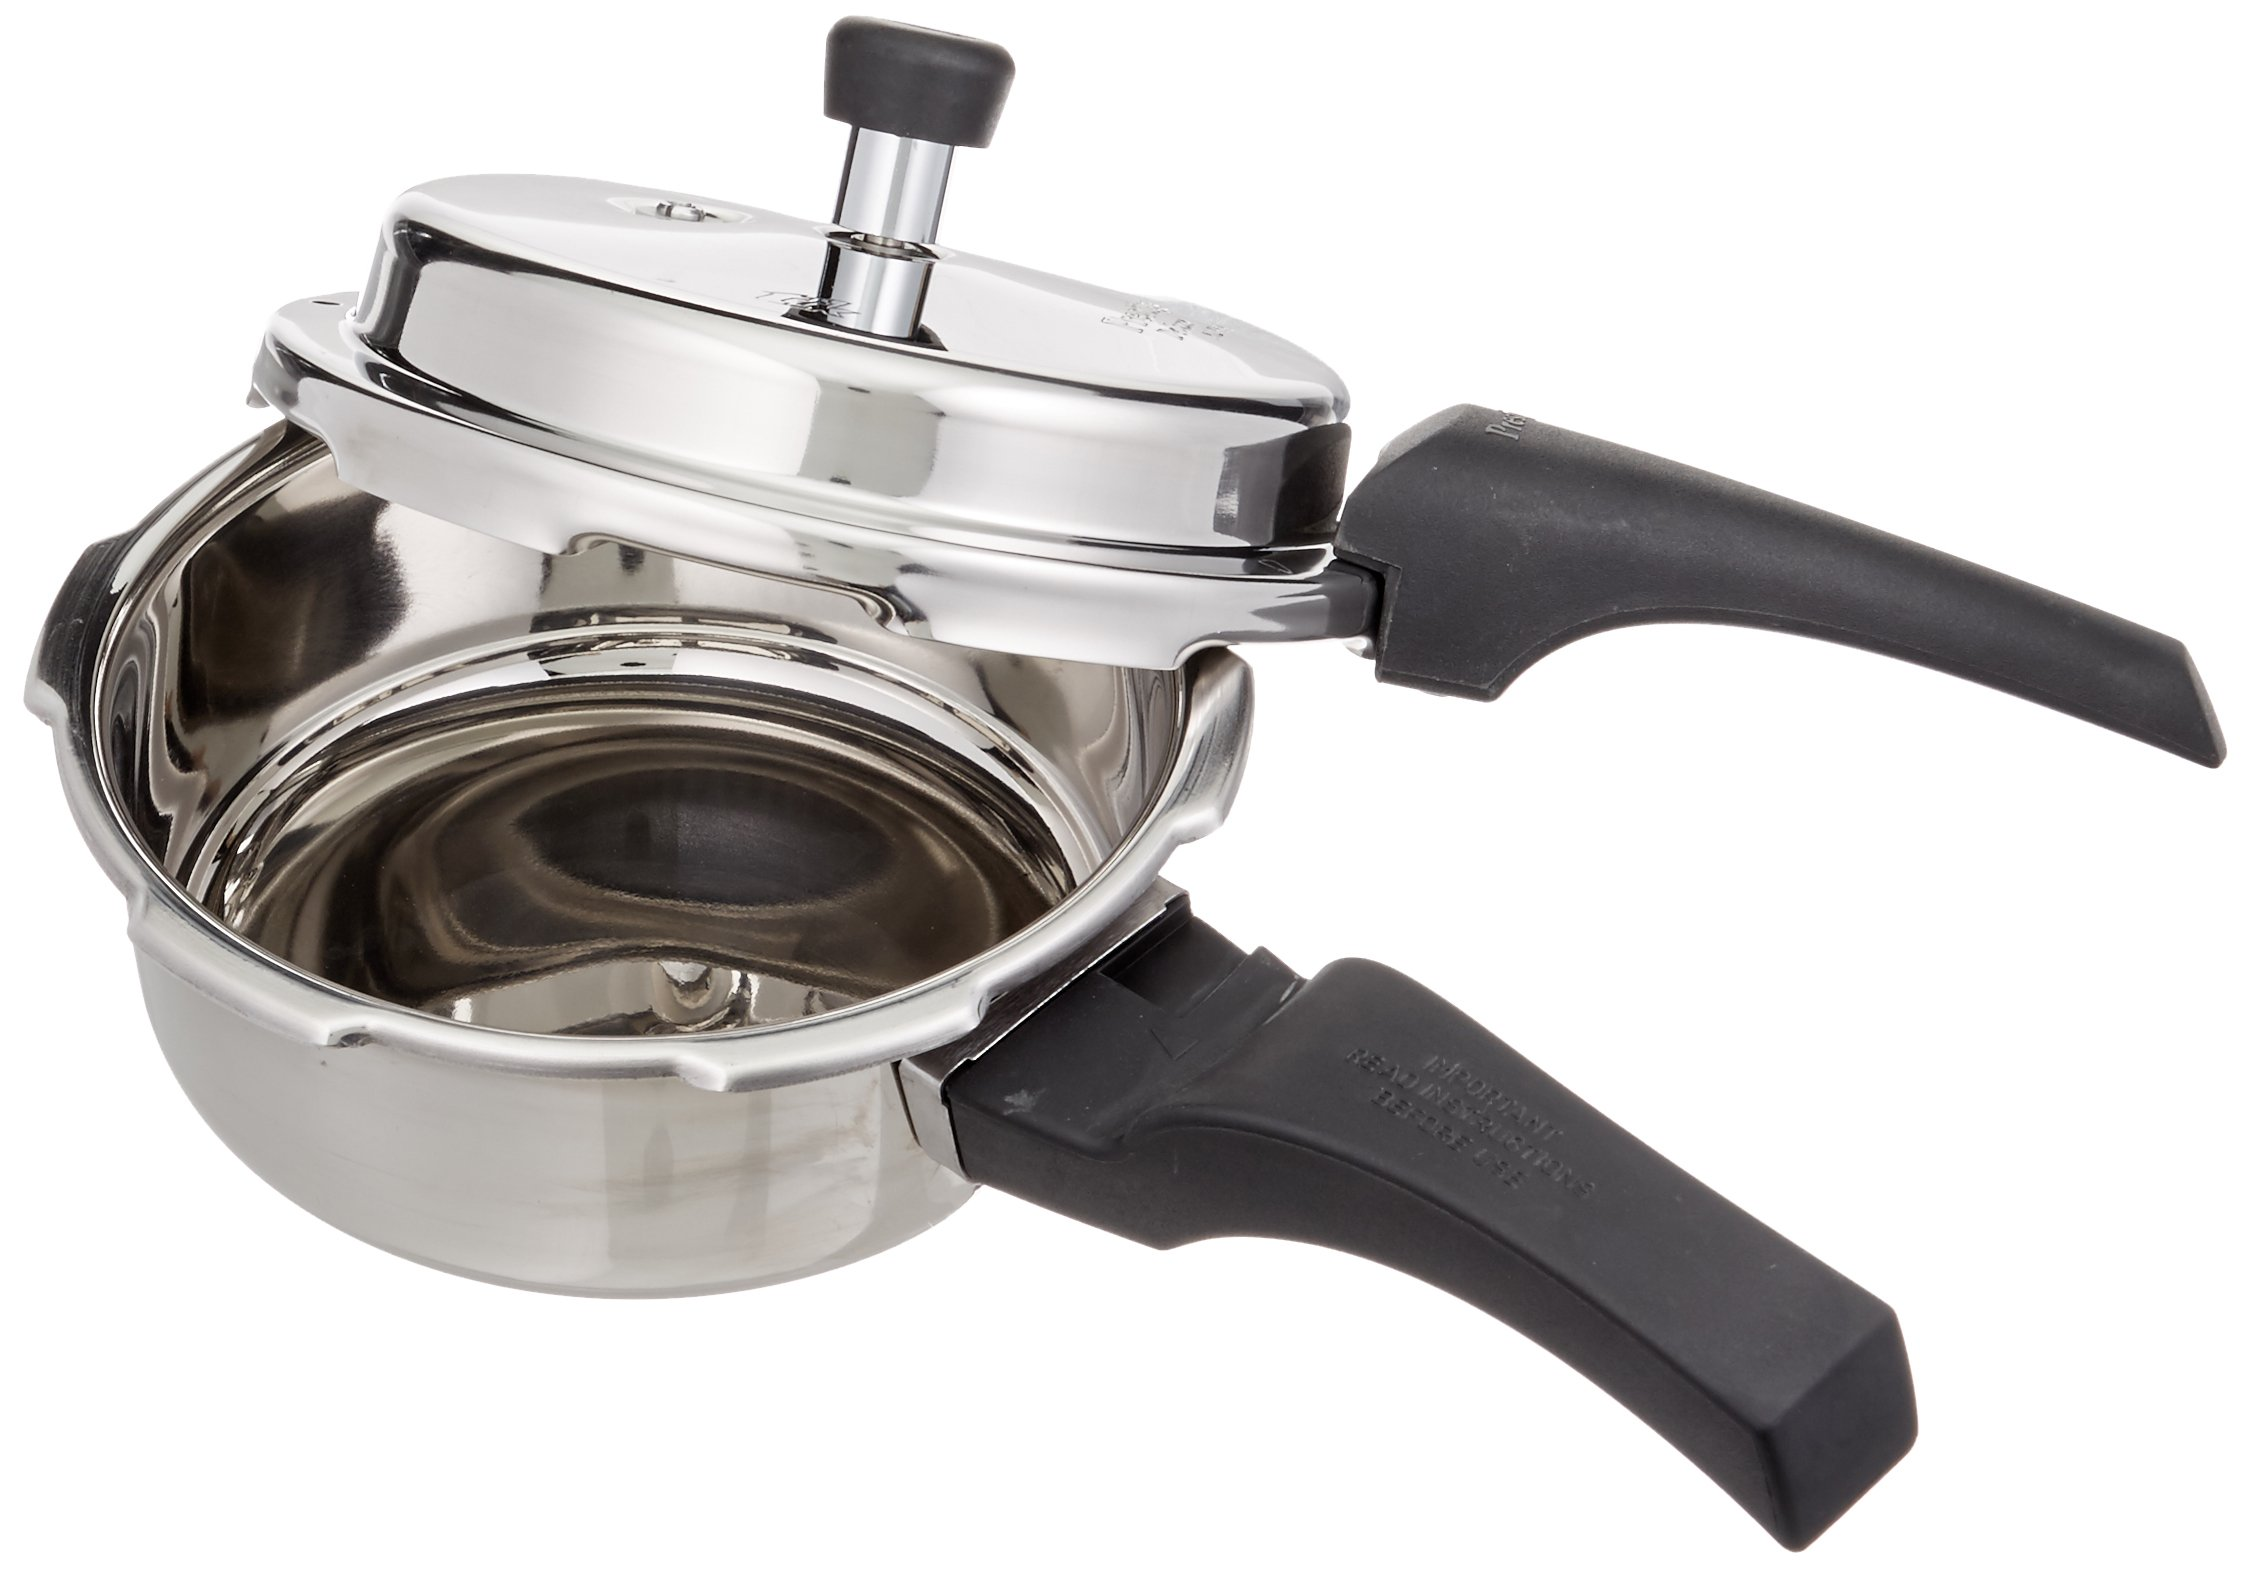 Prestige 2L Alpha Deluxe Induction Base Stainless Steel Pressure Cooker, 2.0-Liter by Prestige